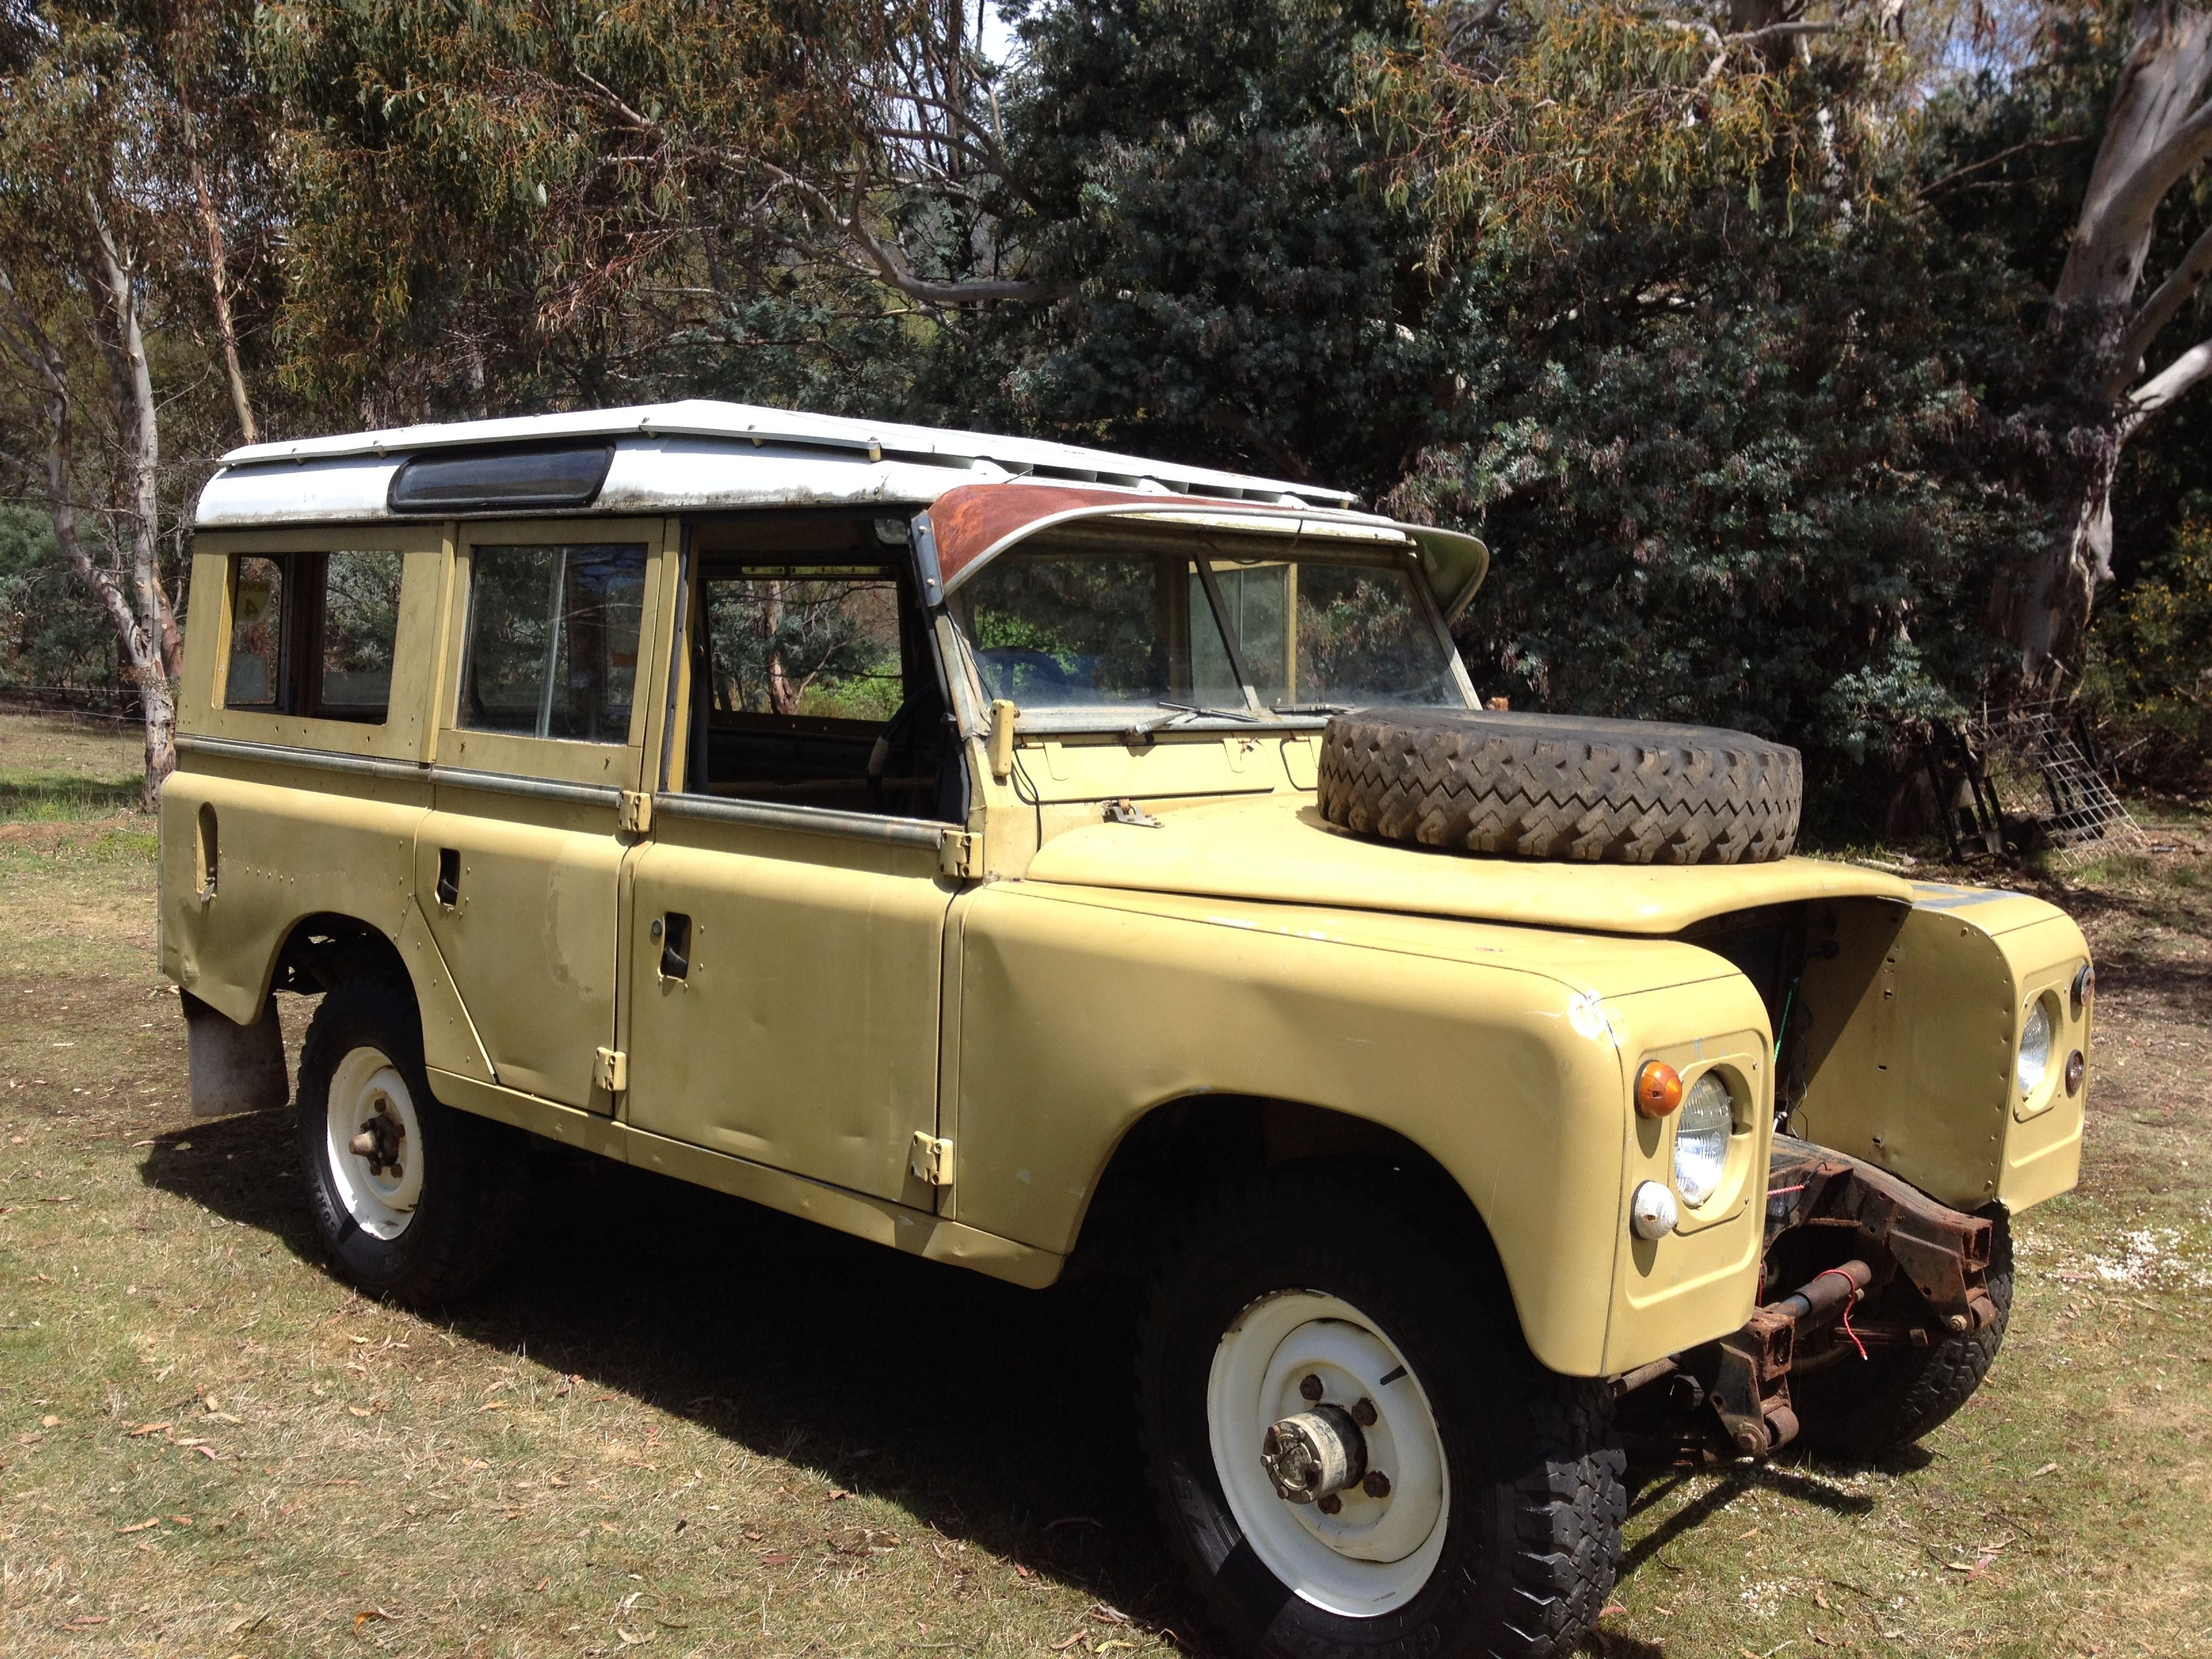 This is my land rover series 3 as is as I purchased to